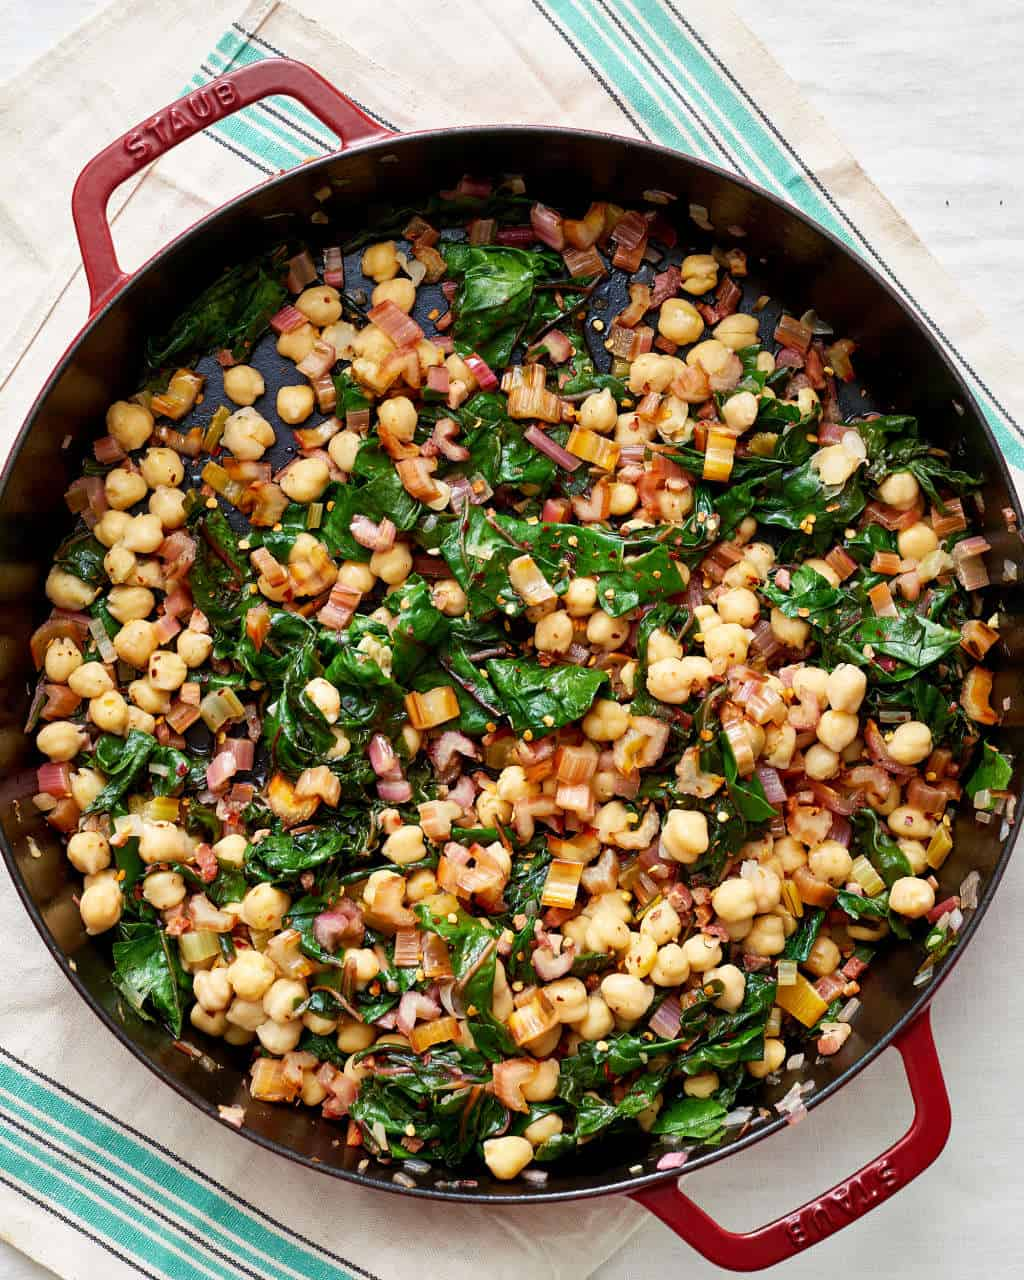 Swiss chard with garbanzo beans